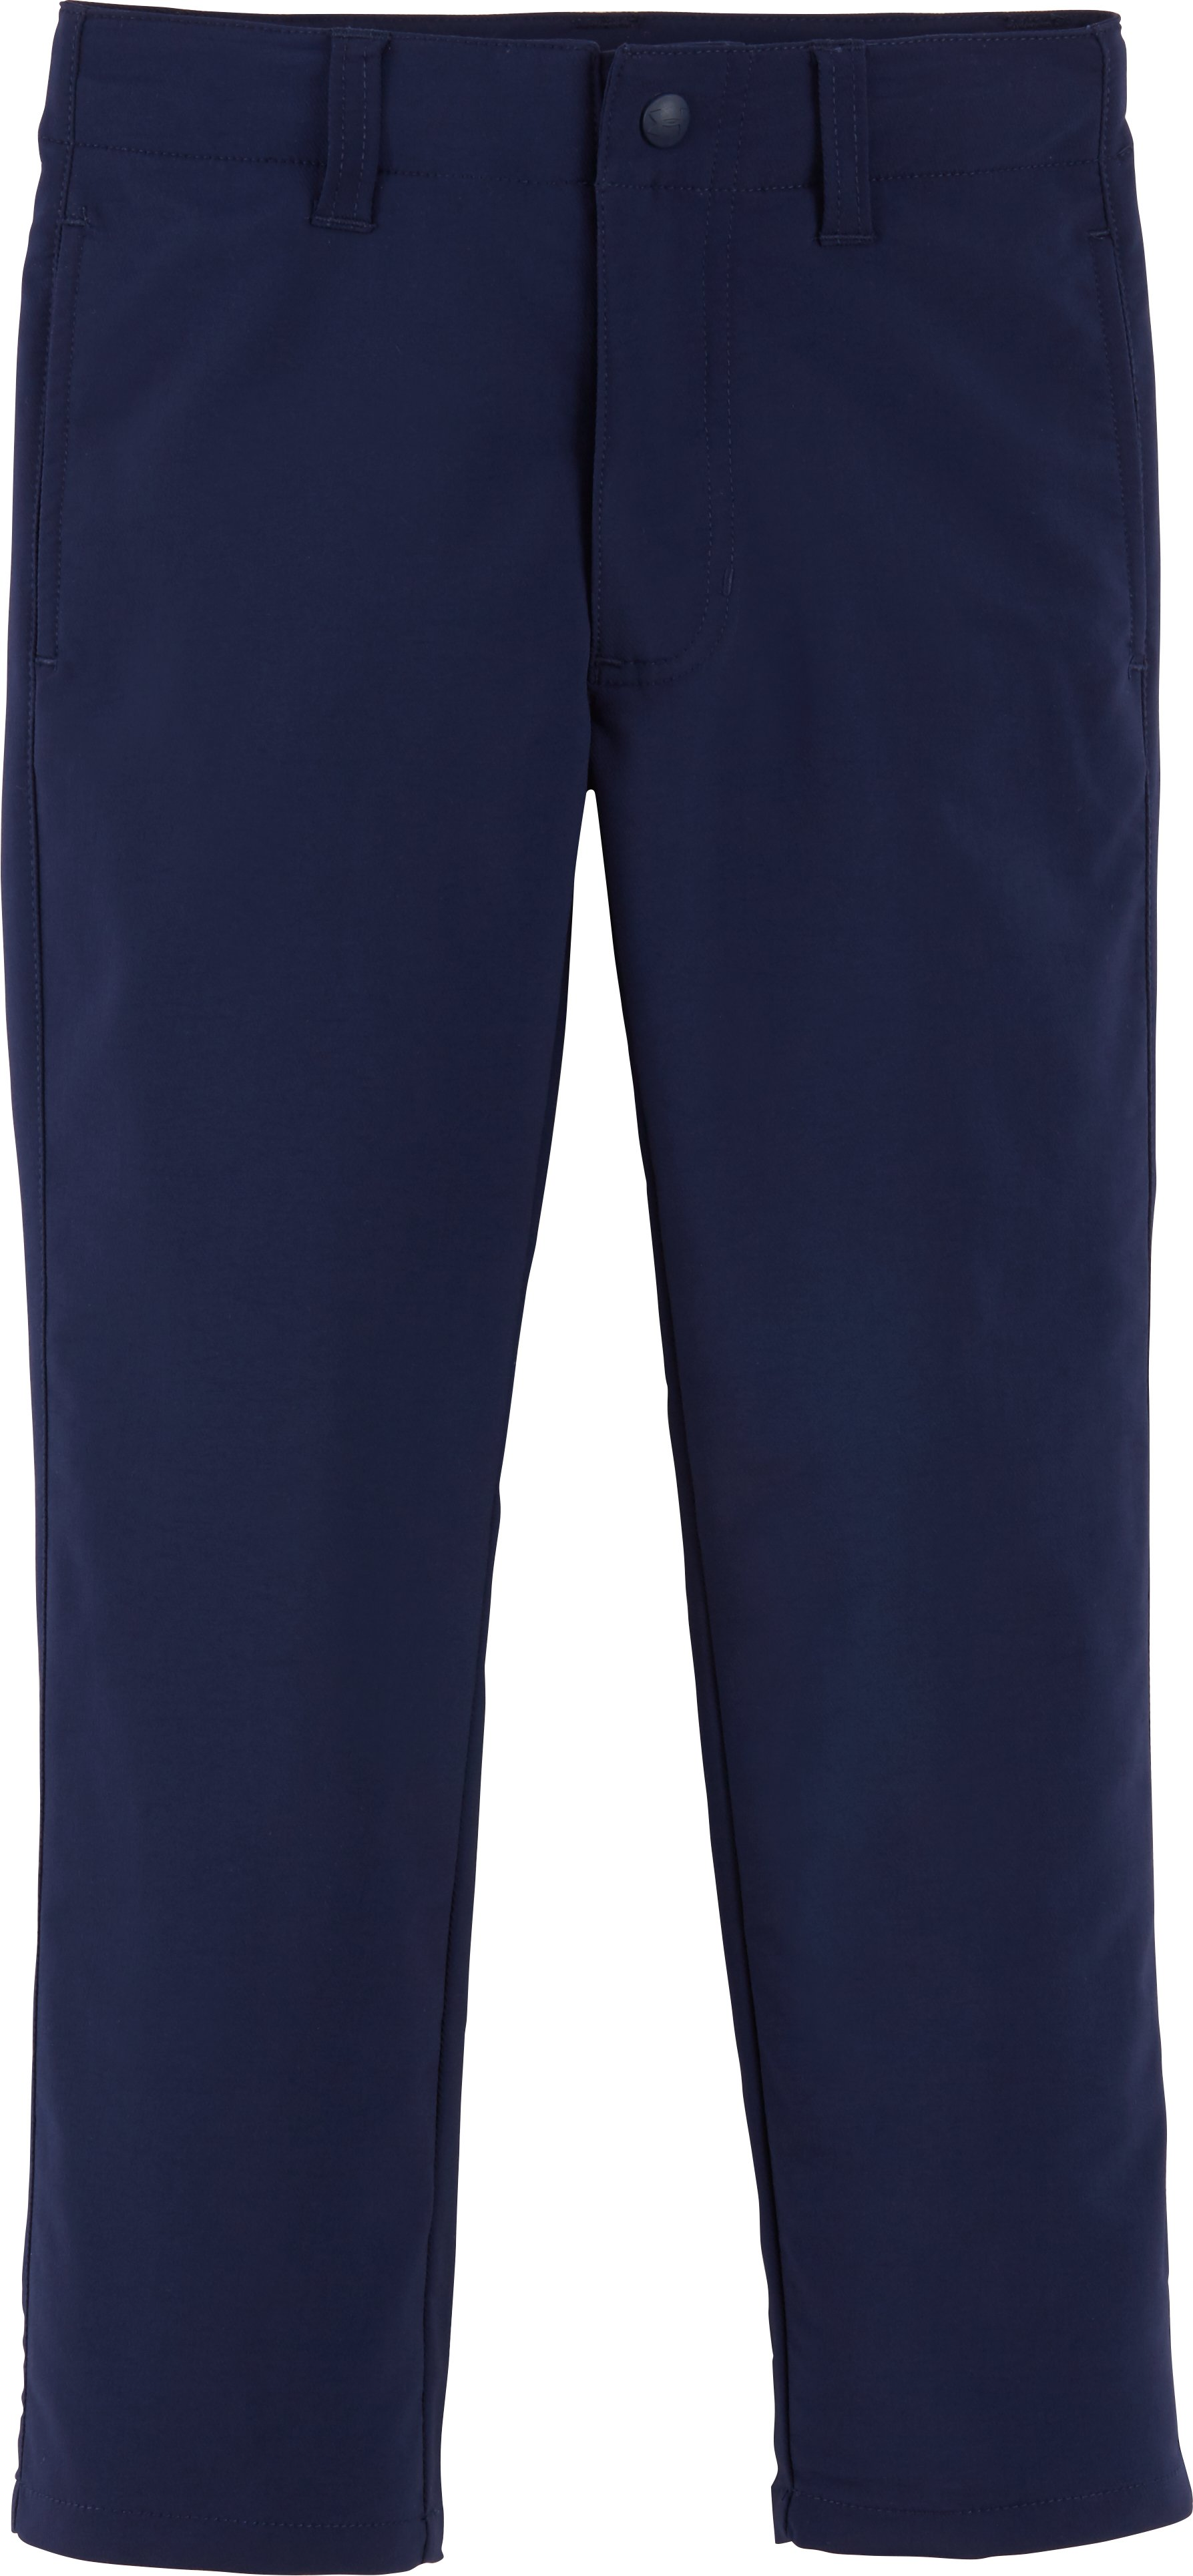 Boys' Pre-School UA Match Play Pants, NAVY SEAL